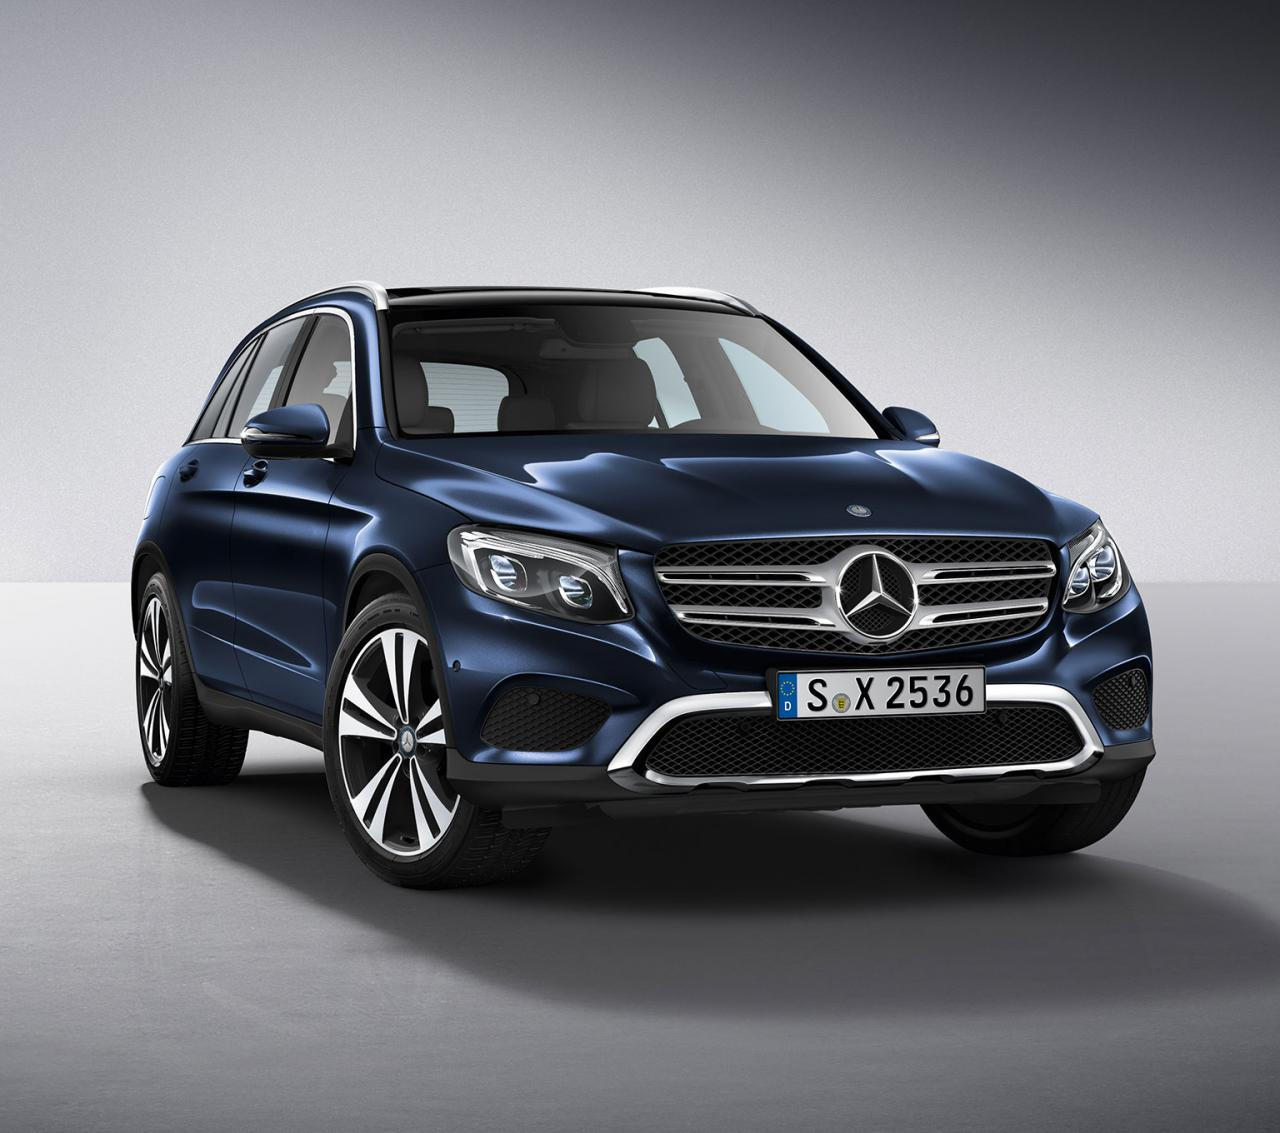 2016 Mercedes Benz GLC